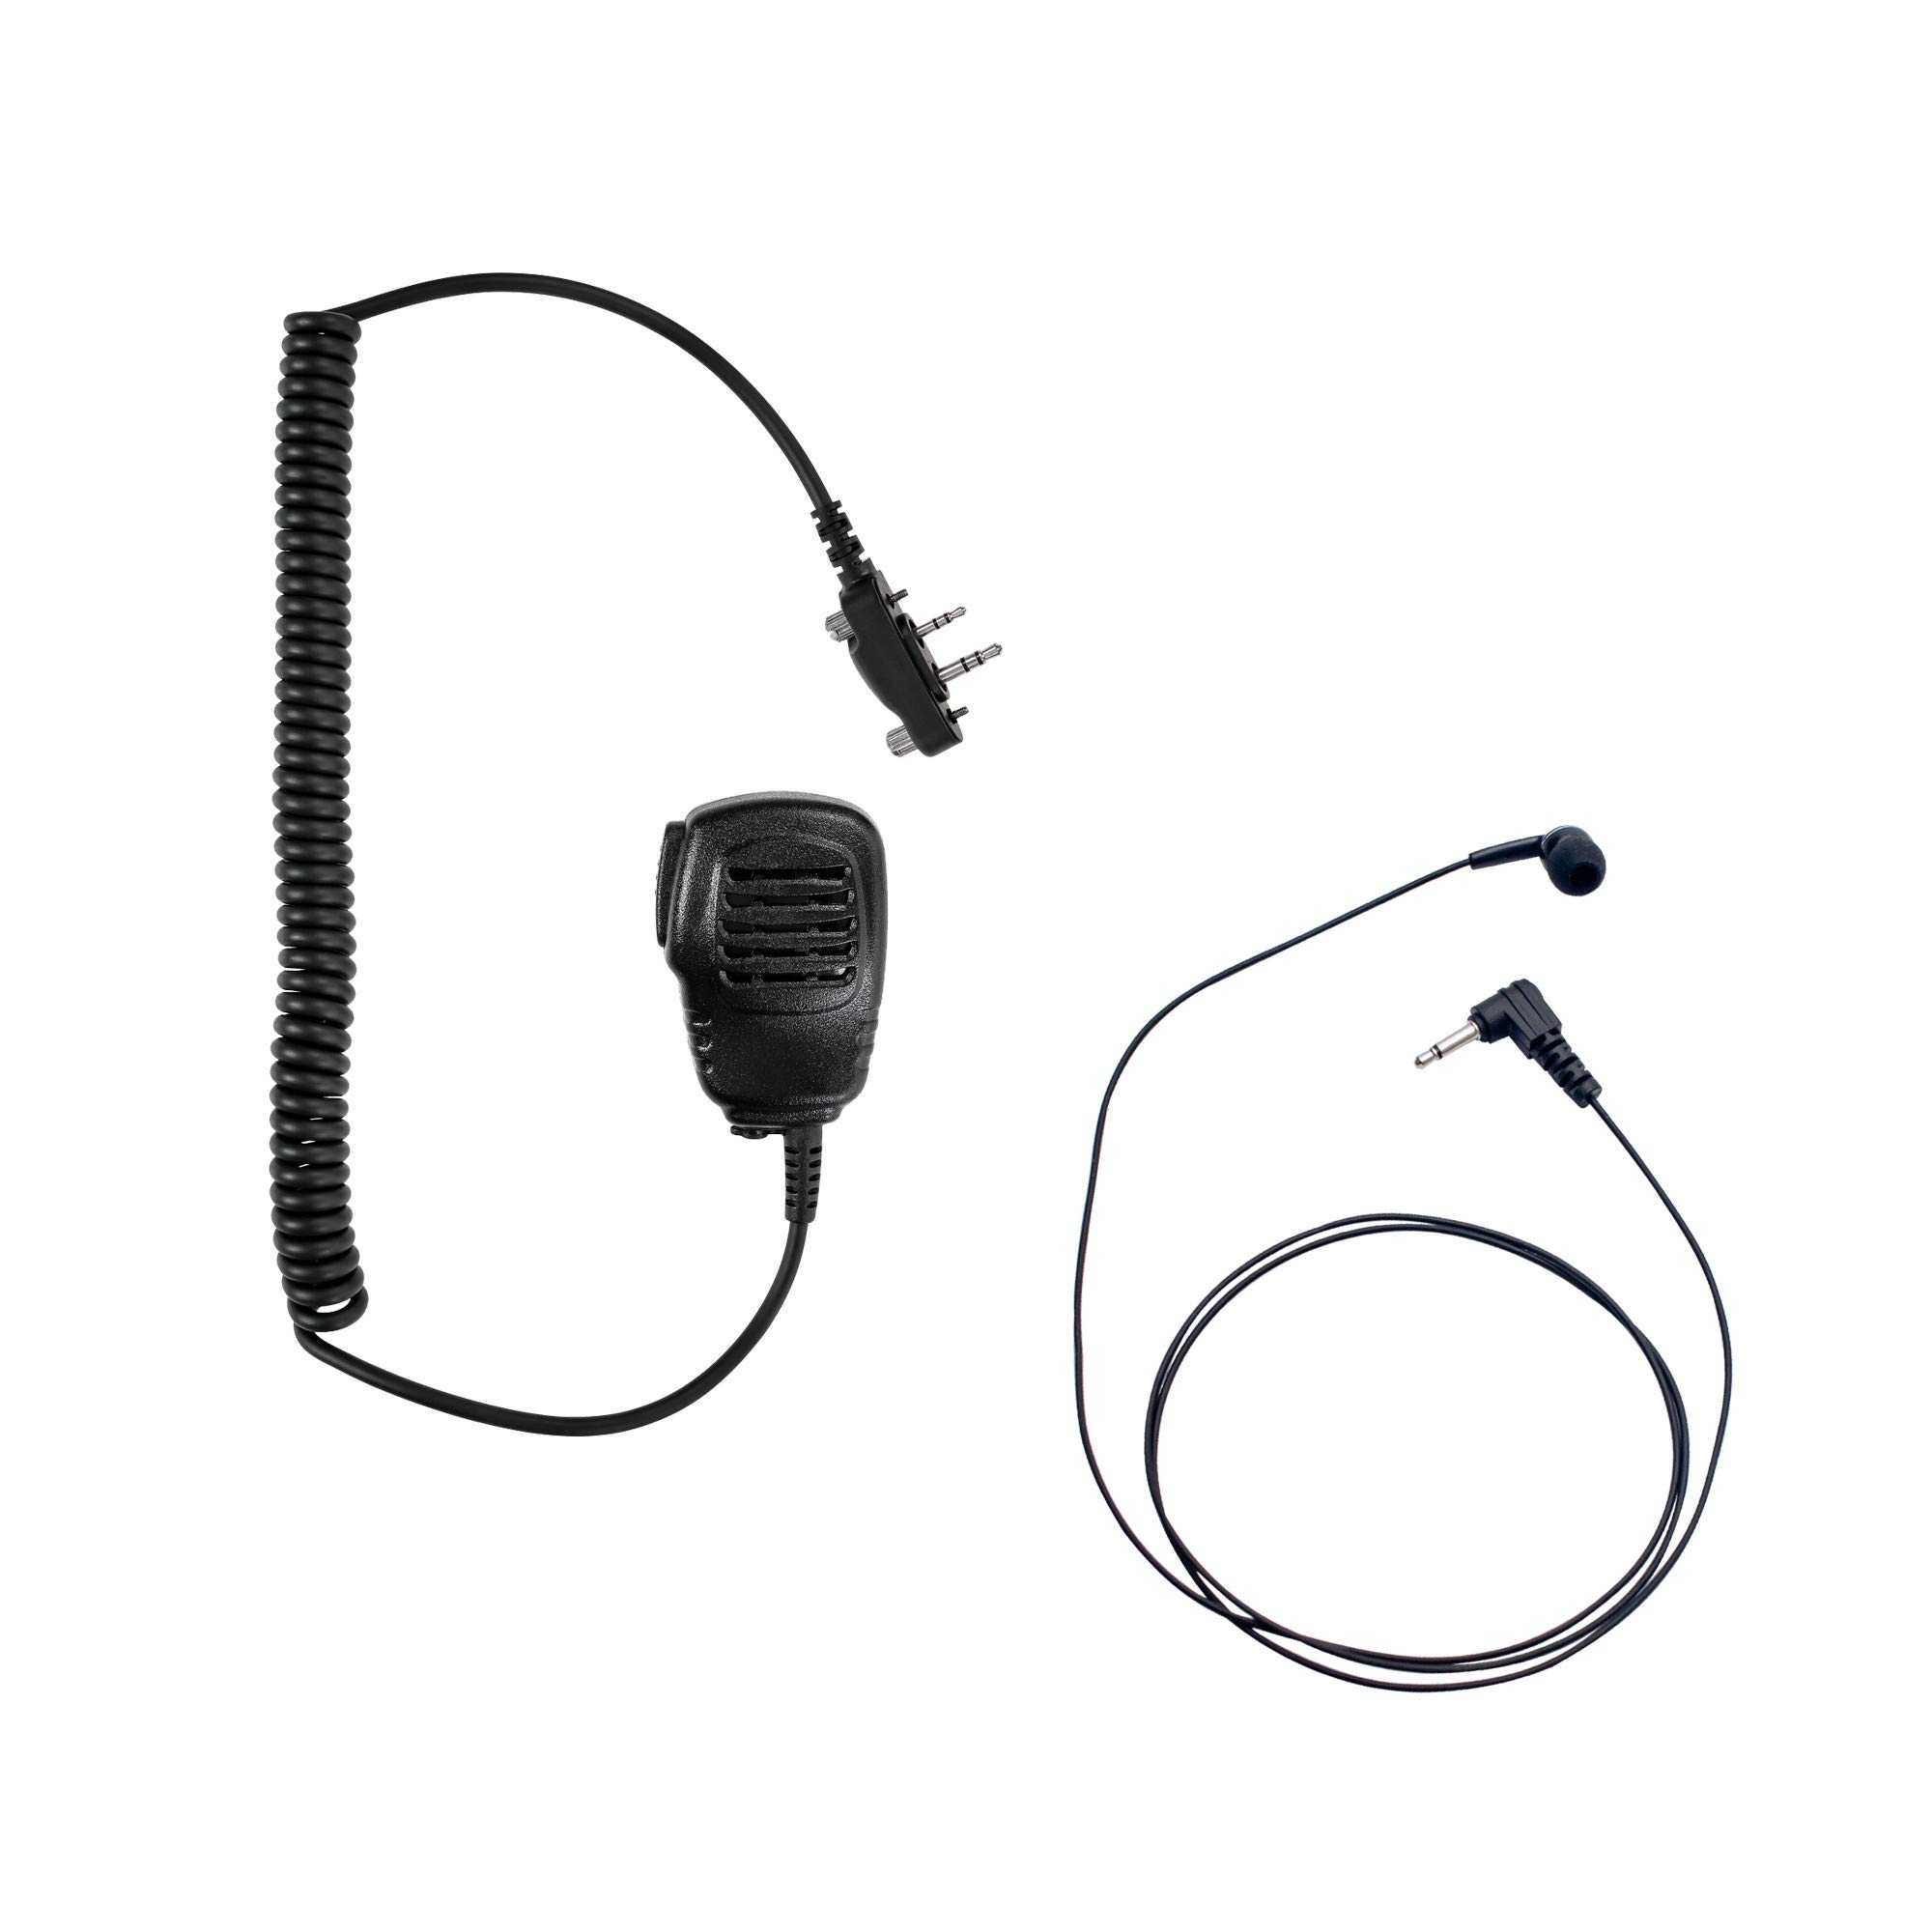 Maxtop APM100ARP19-I2 Light Duty Shoulder Speaker Microphone + Coil Extend Listen Only Earpiece for ICOM